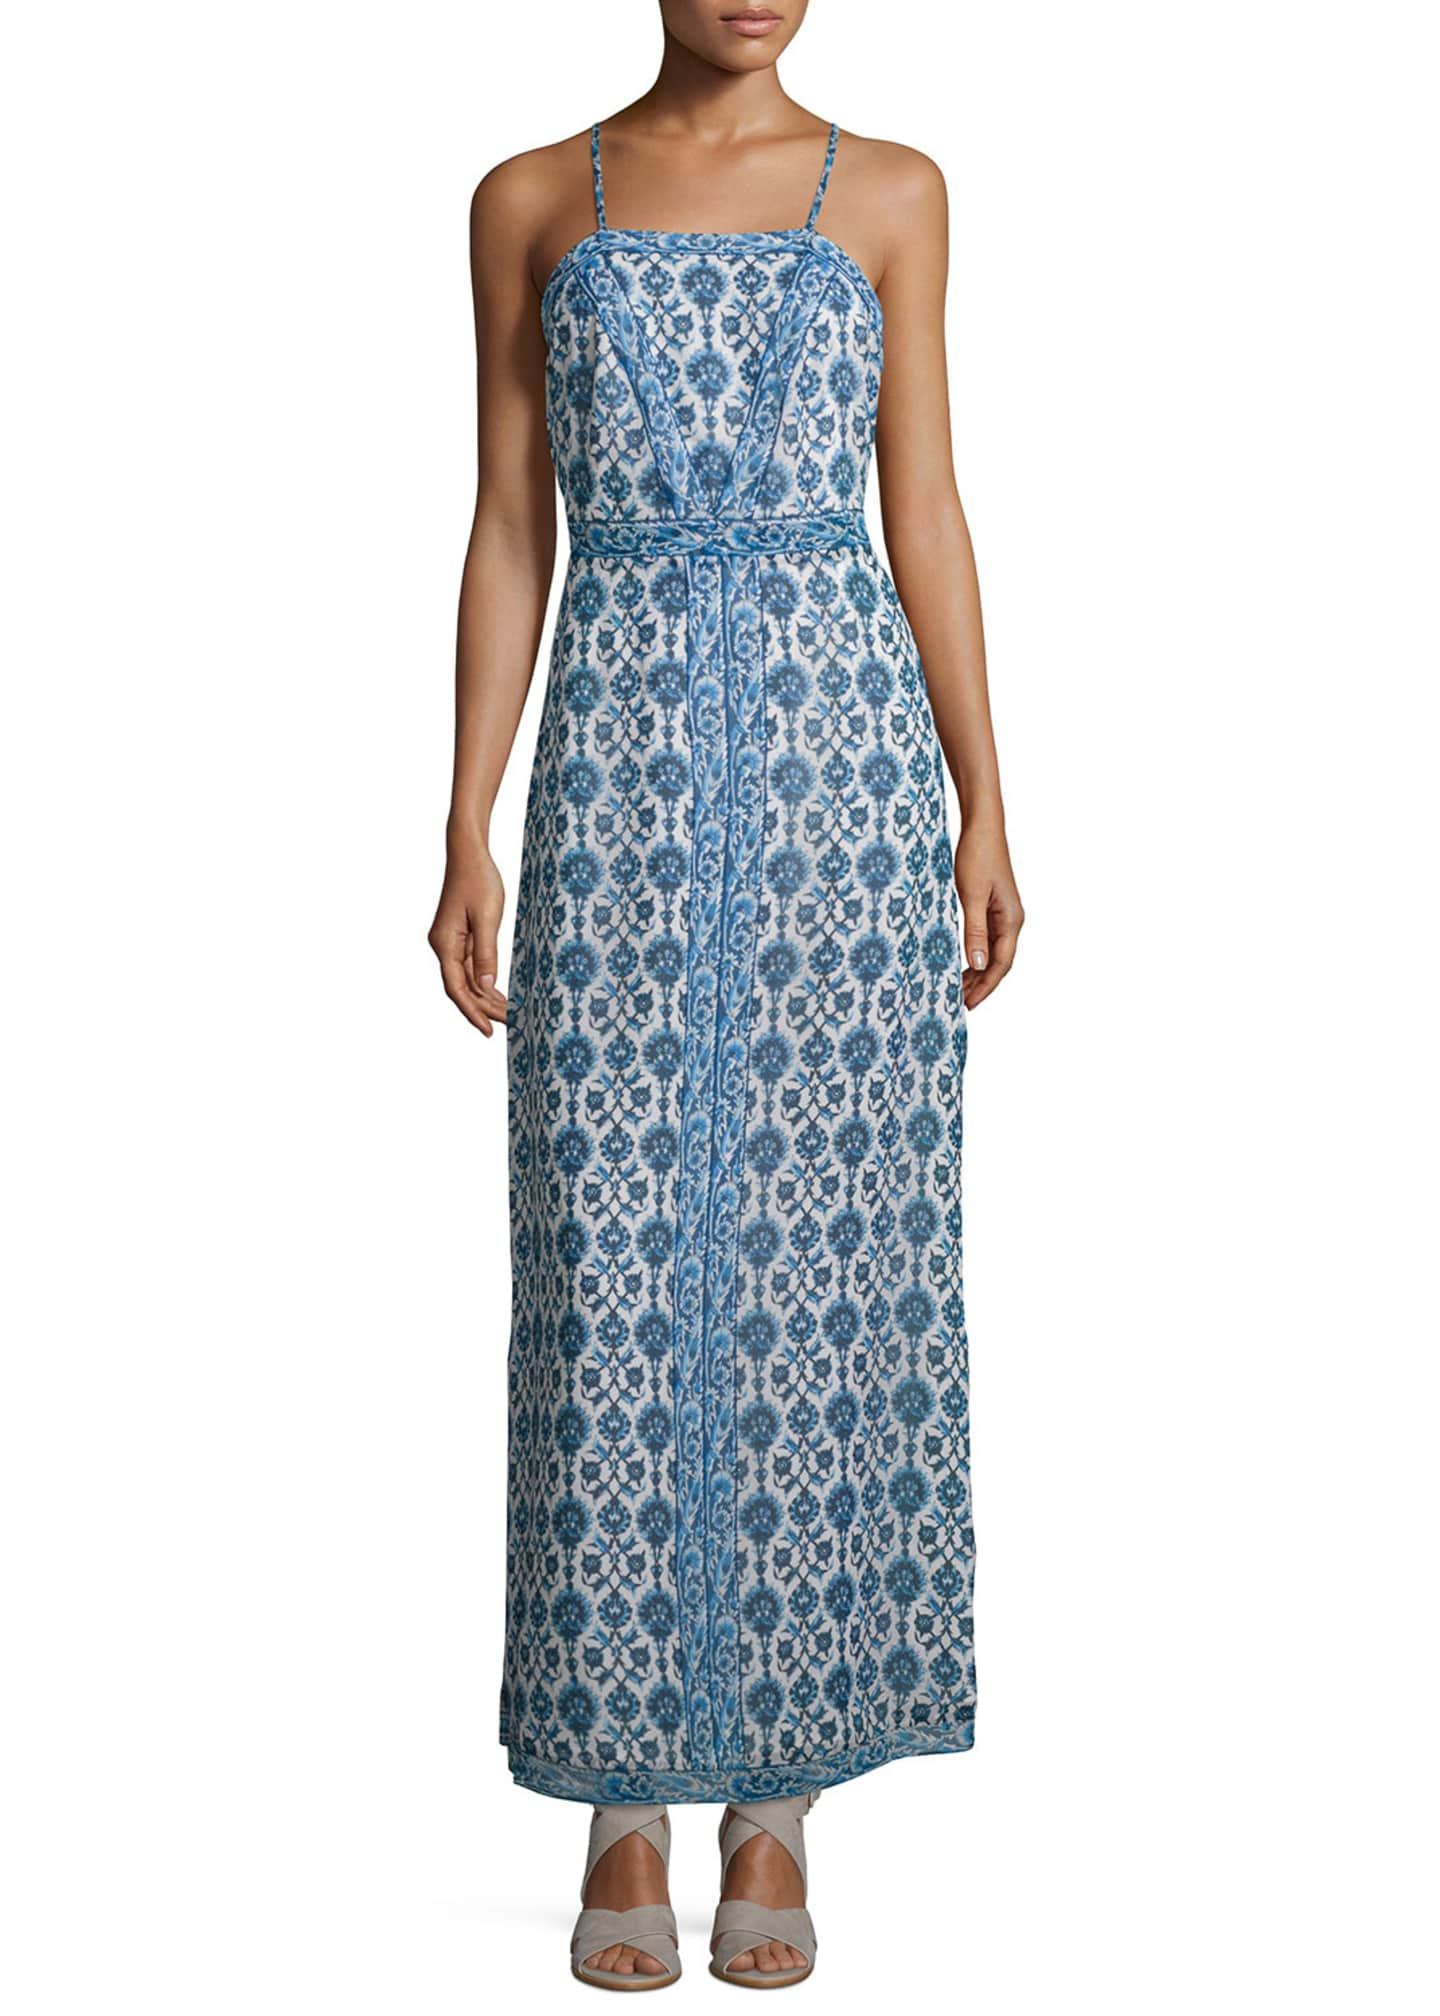 Joie Alister Floral-Print Maxi Dress